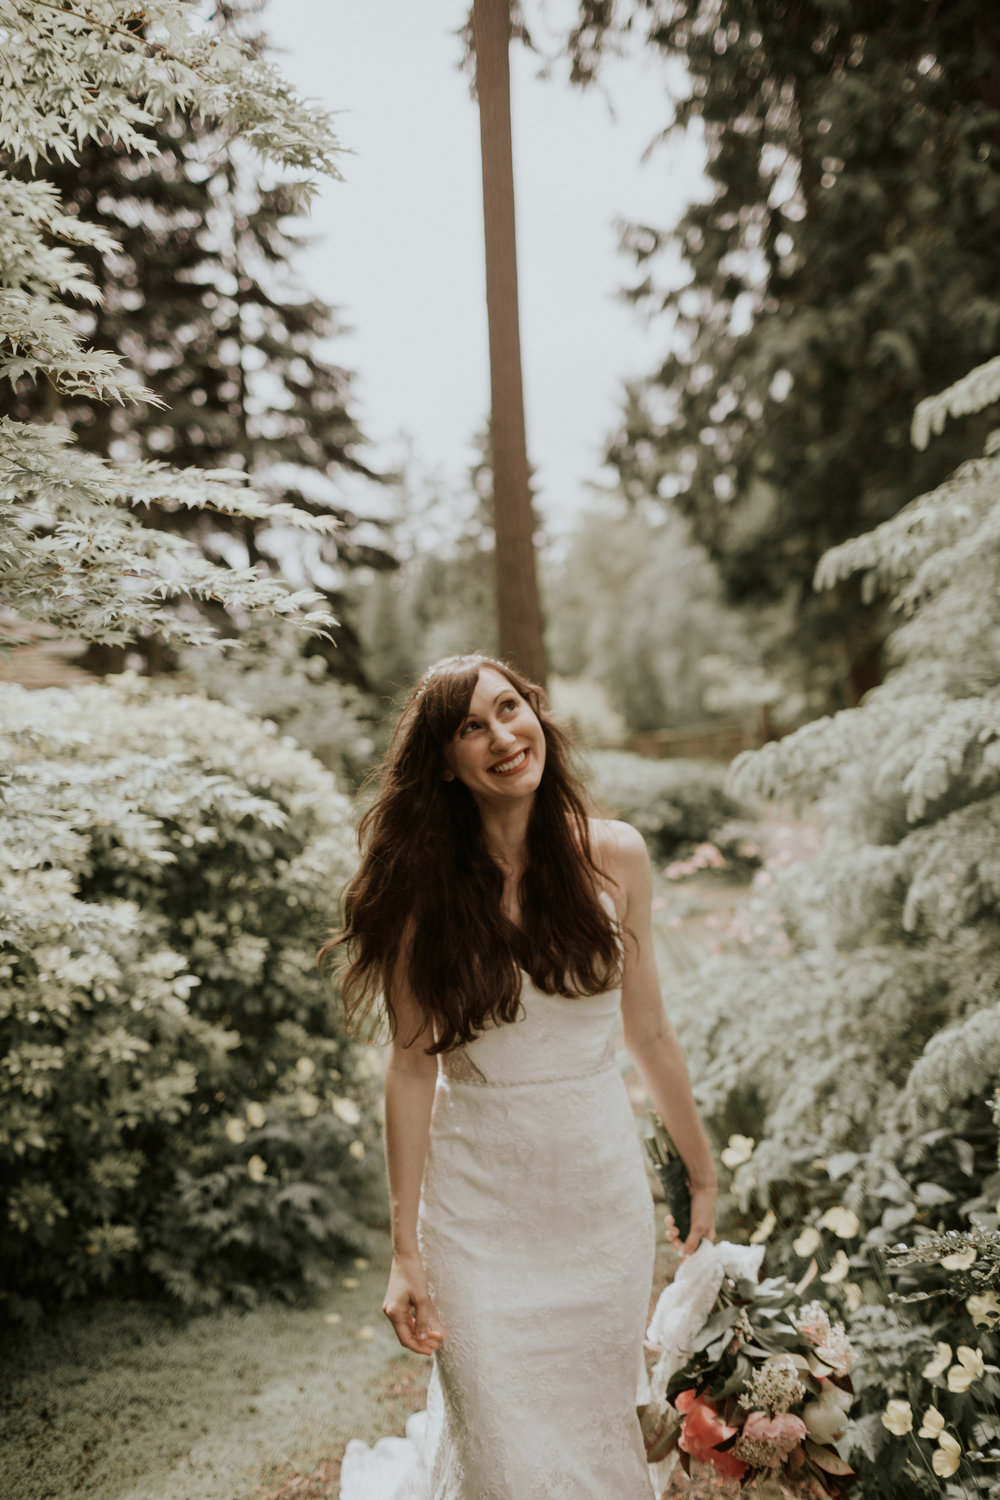 PNW-elopement-wedding-engagement-olympic national park-port angeles-hurricane ridge-lake crescent-kayla dawn photography- photographer-photography-kayladawnphoto-19.jpg